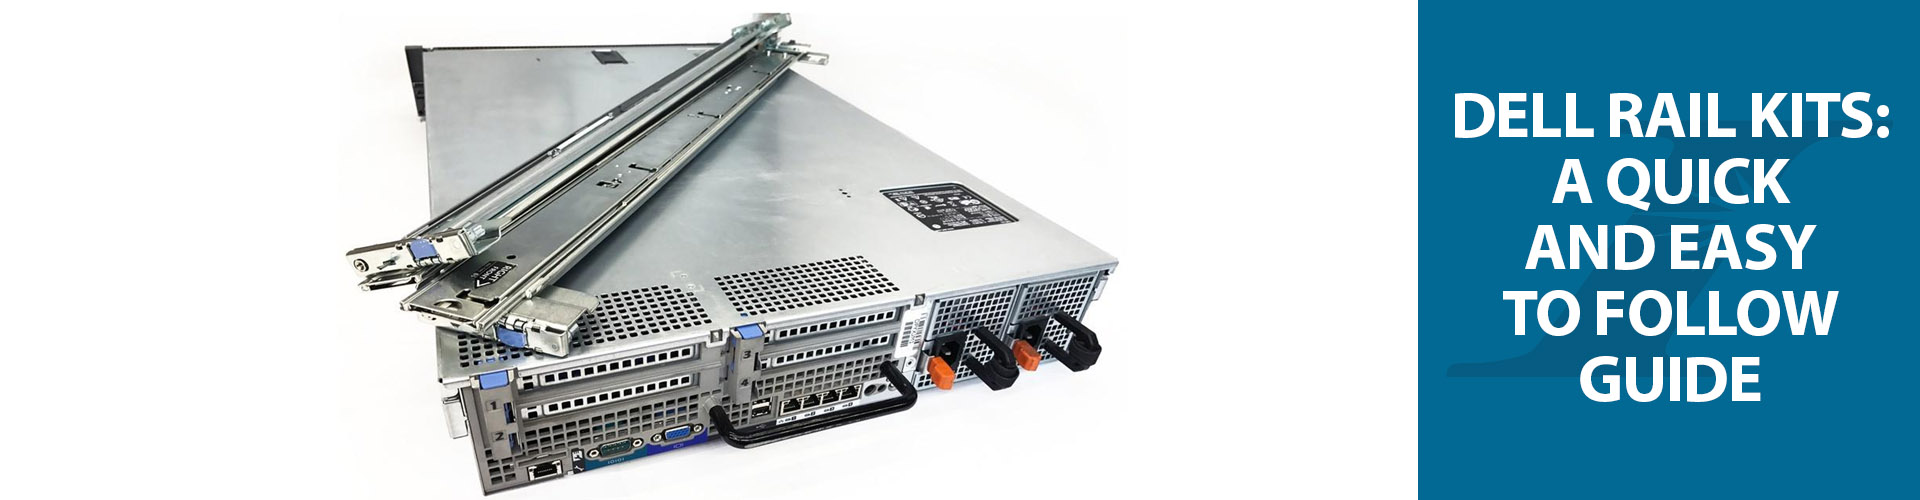 Dell Rail Kits: A Quick and Easy-to-Follow Guide